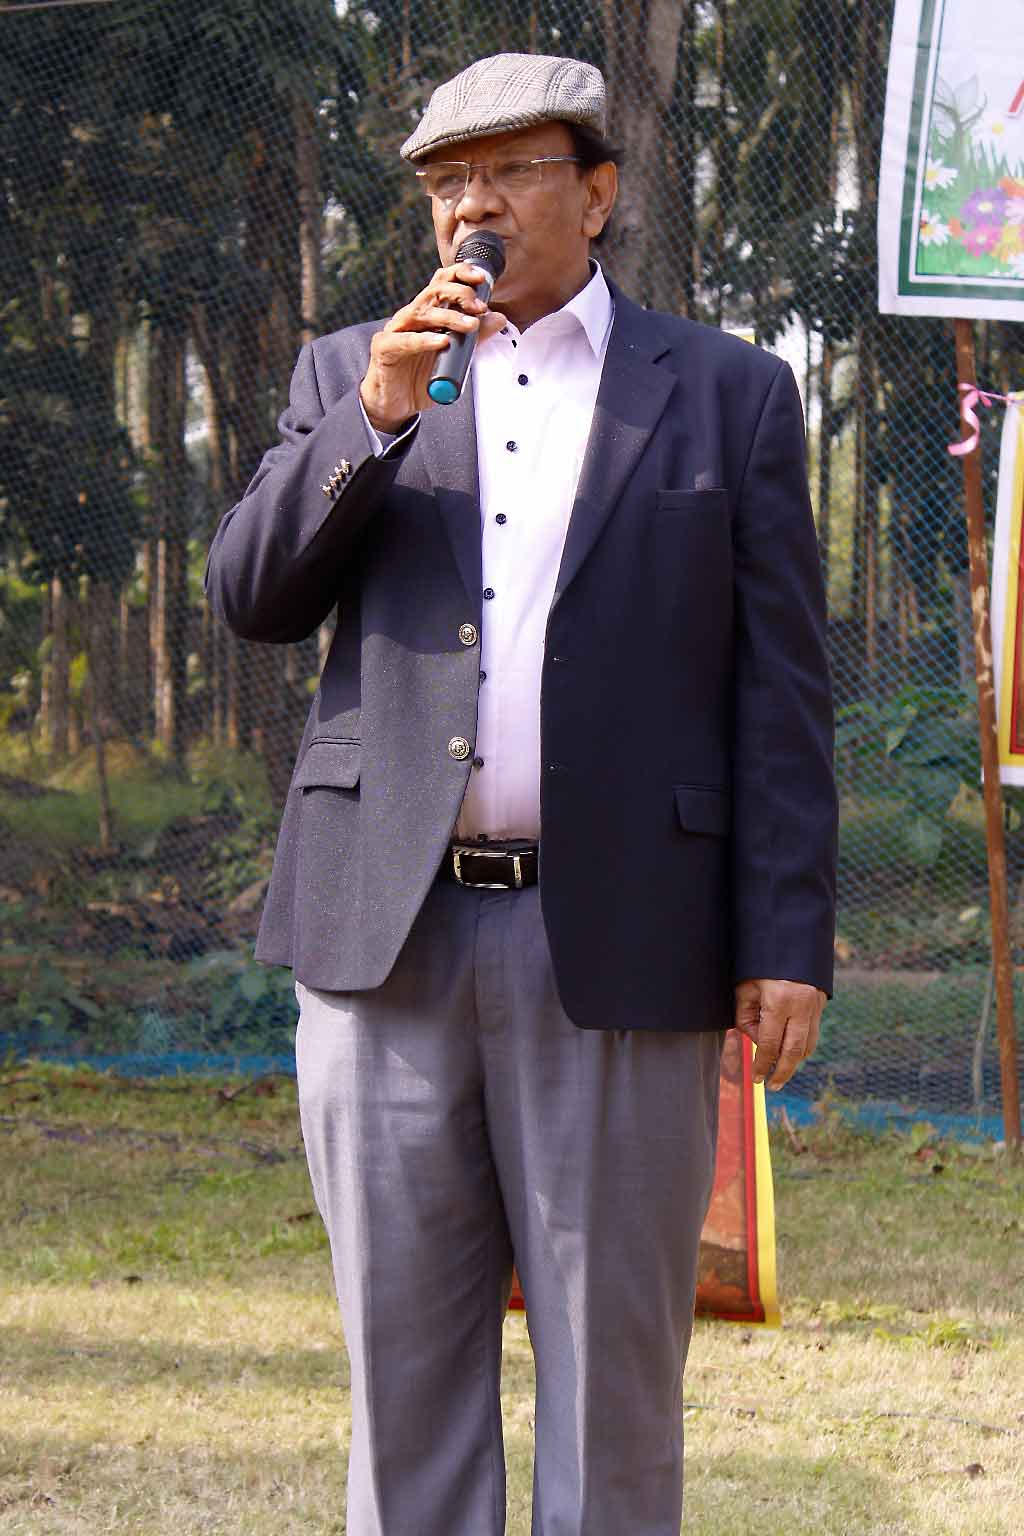 Mr. Pradip Chopra at Annual Picnic 2019